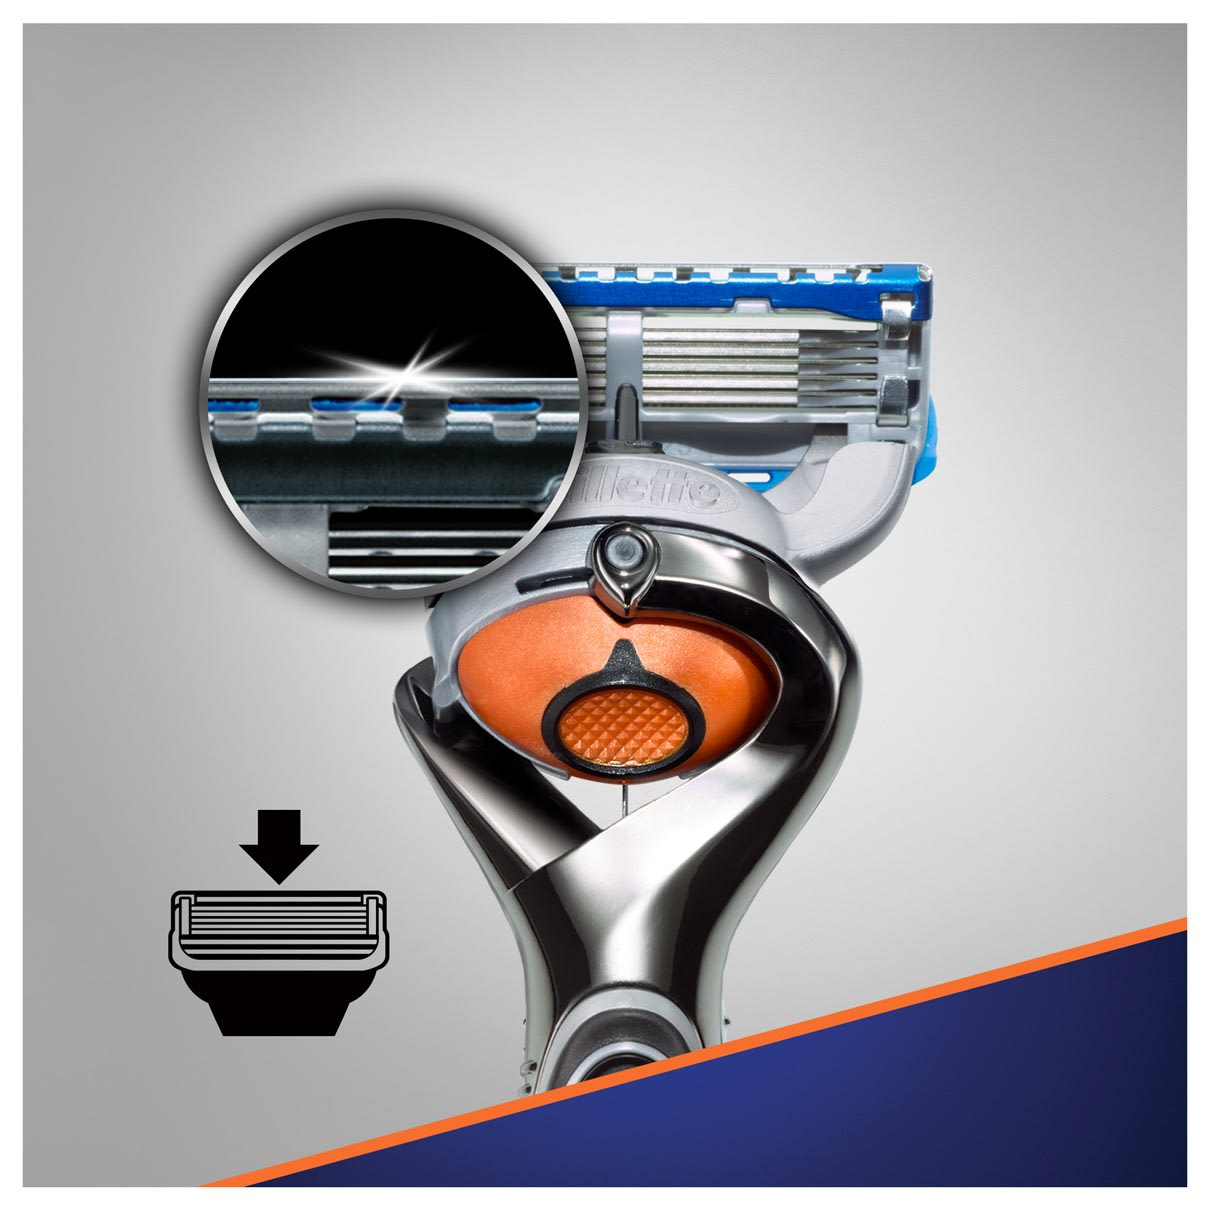 4. Precision trimmer for hard-to-reach areas & styling facial hair